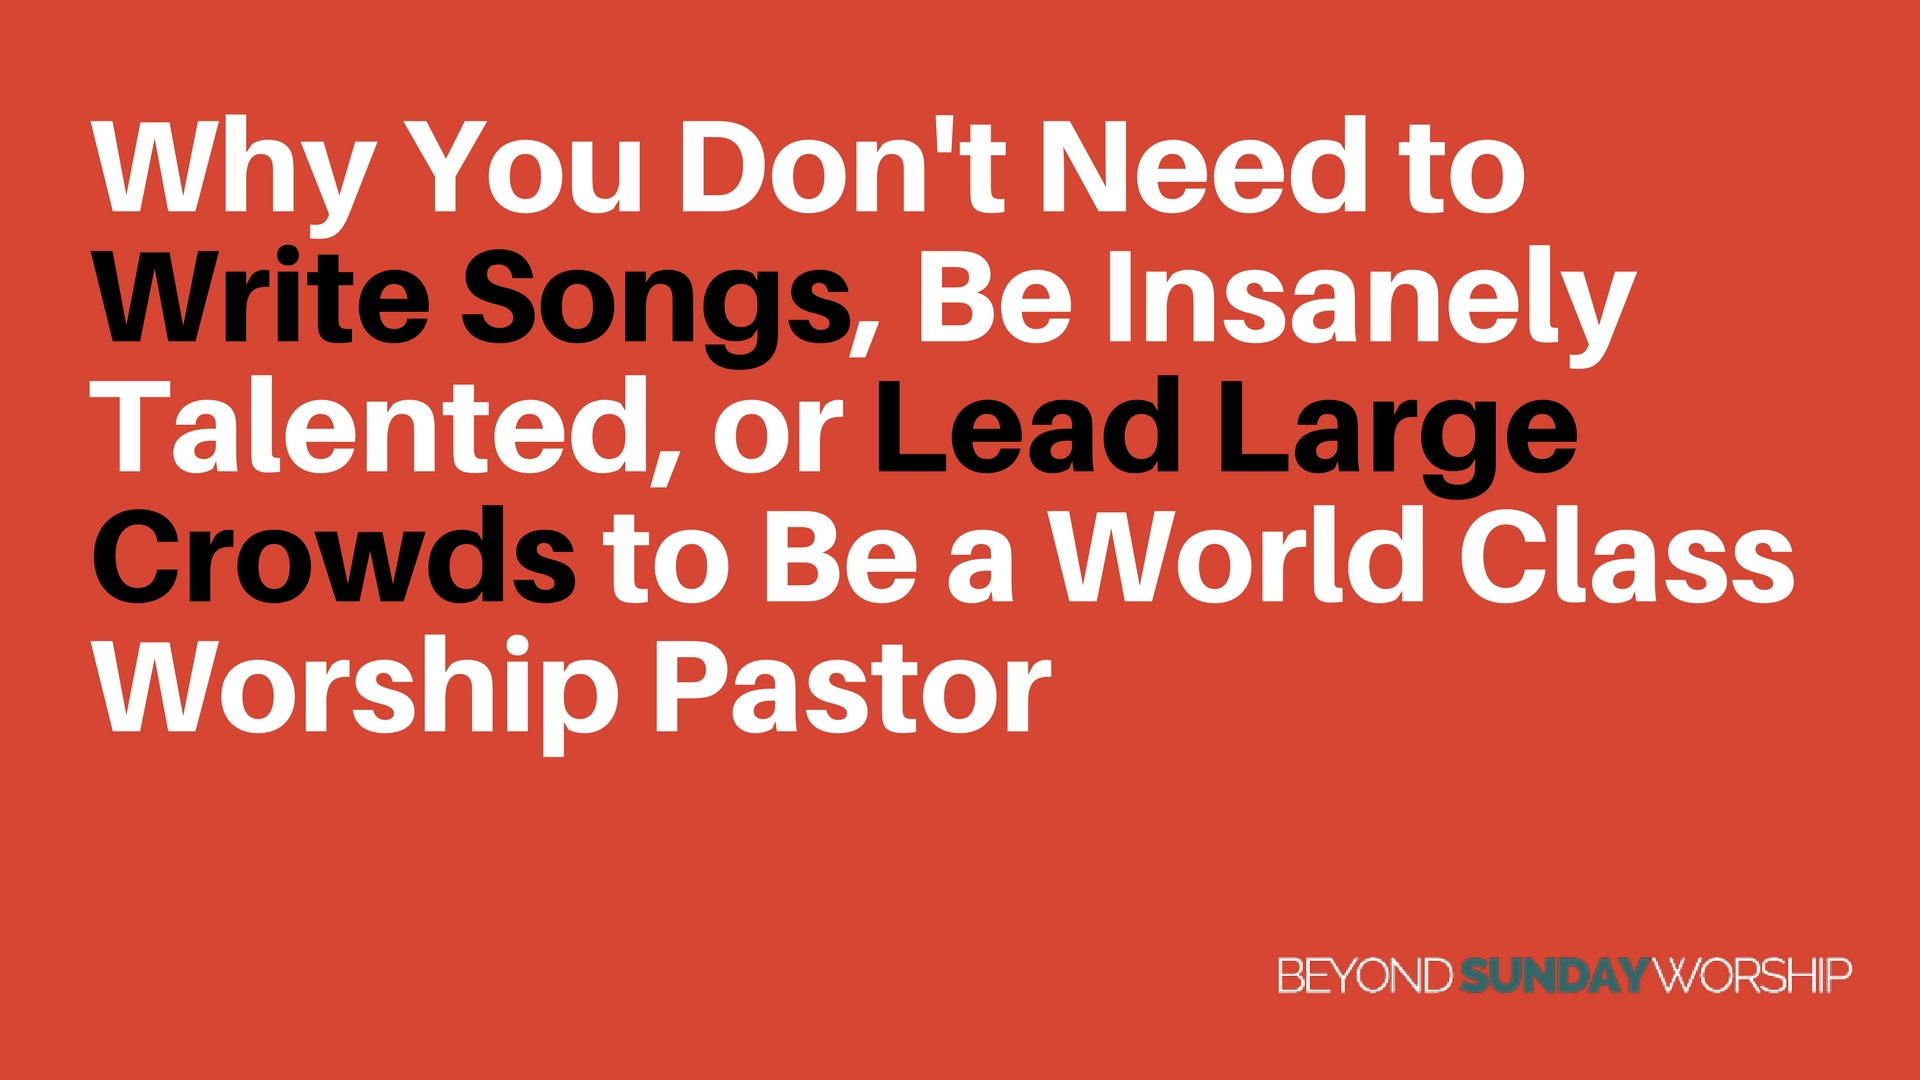 Why You Don't Need to Write Songs, Be Insanely Talented, or Lead Large Crowds to Be a World Class Worship Pastor